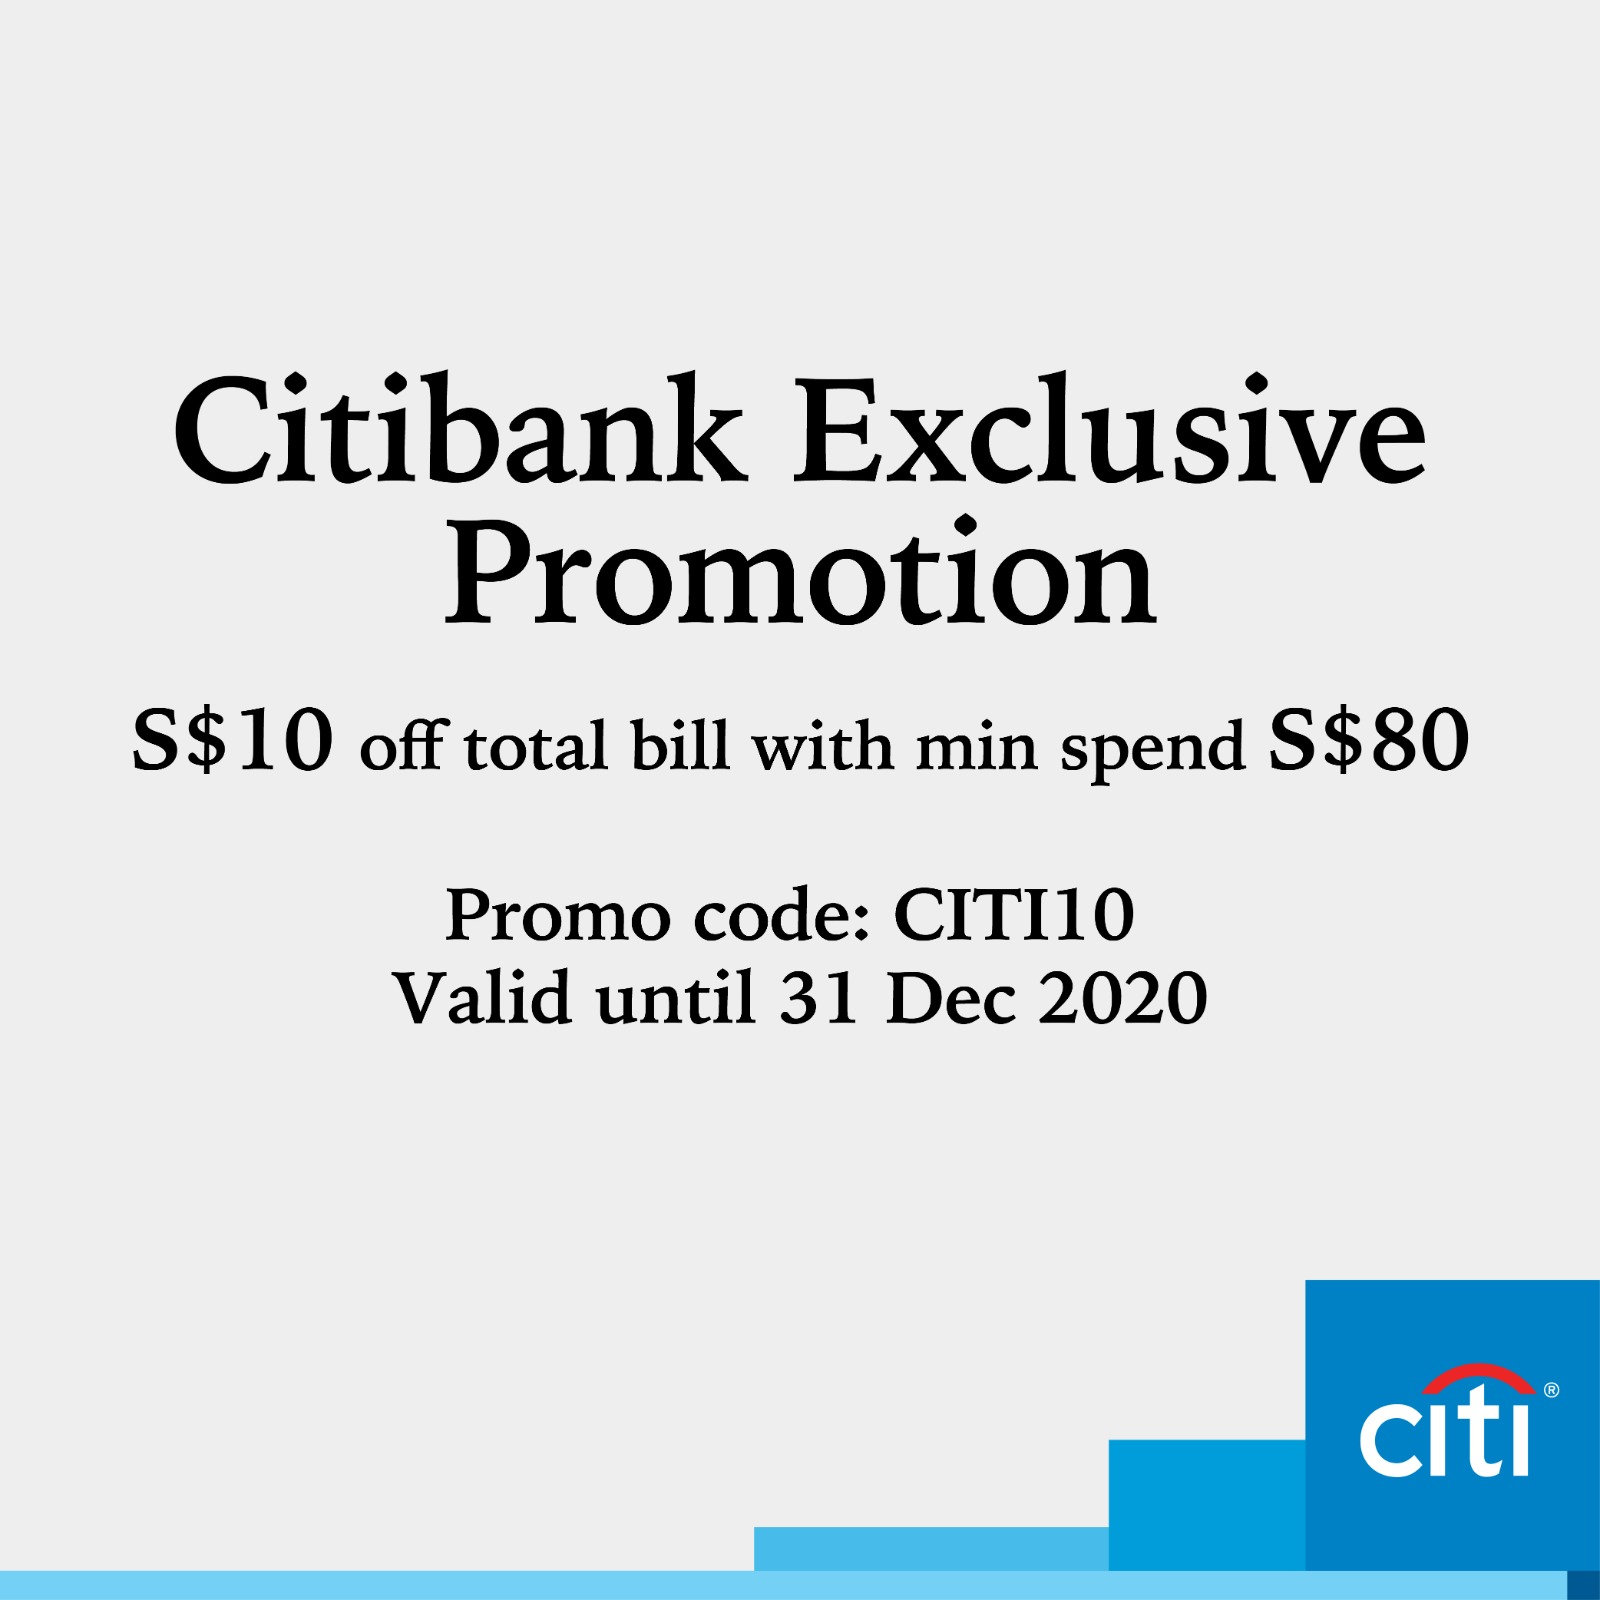 Enjoy $10 OFF with Citi Cards!